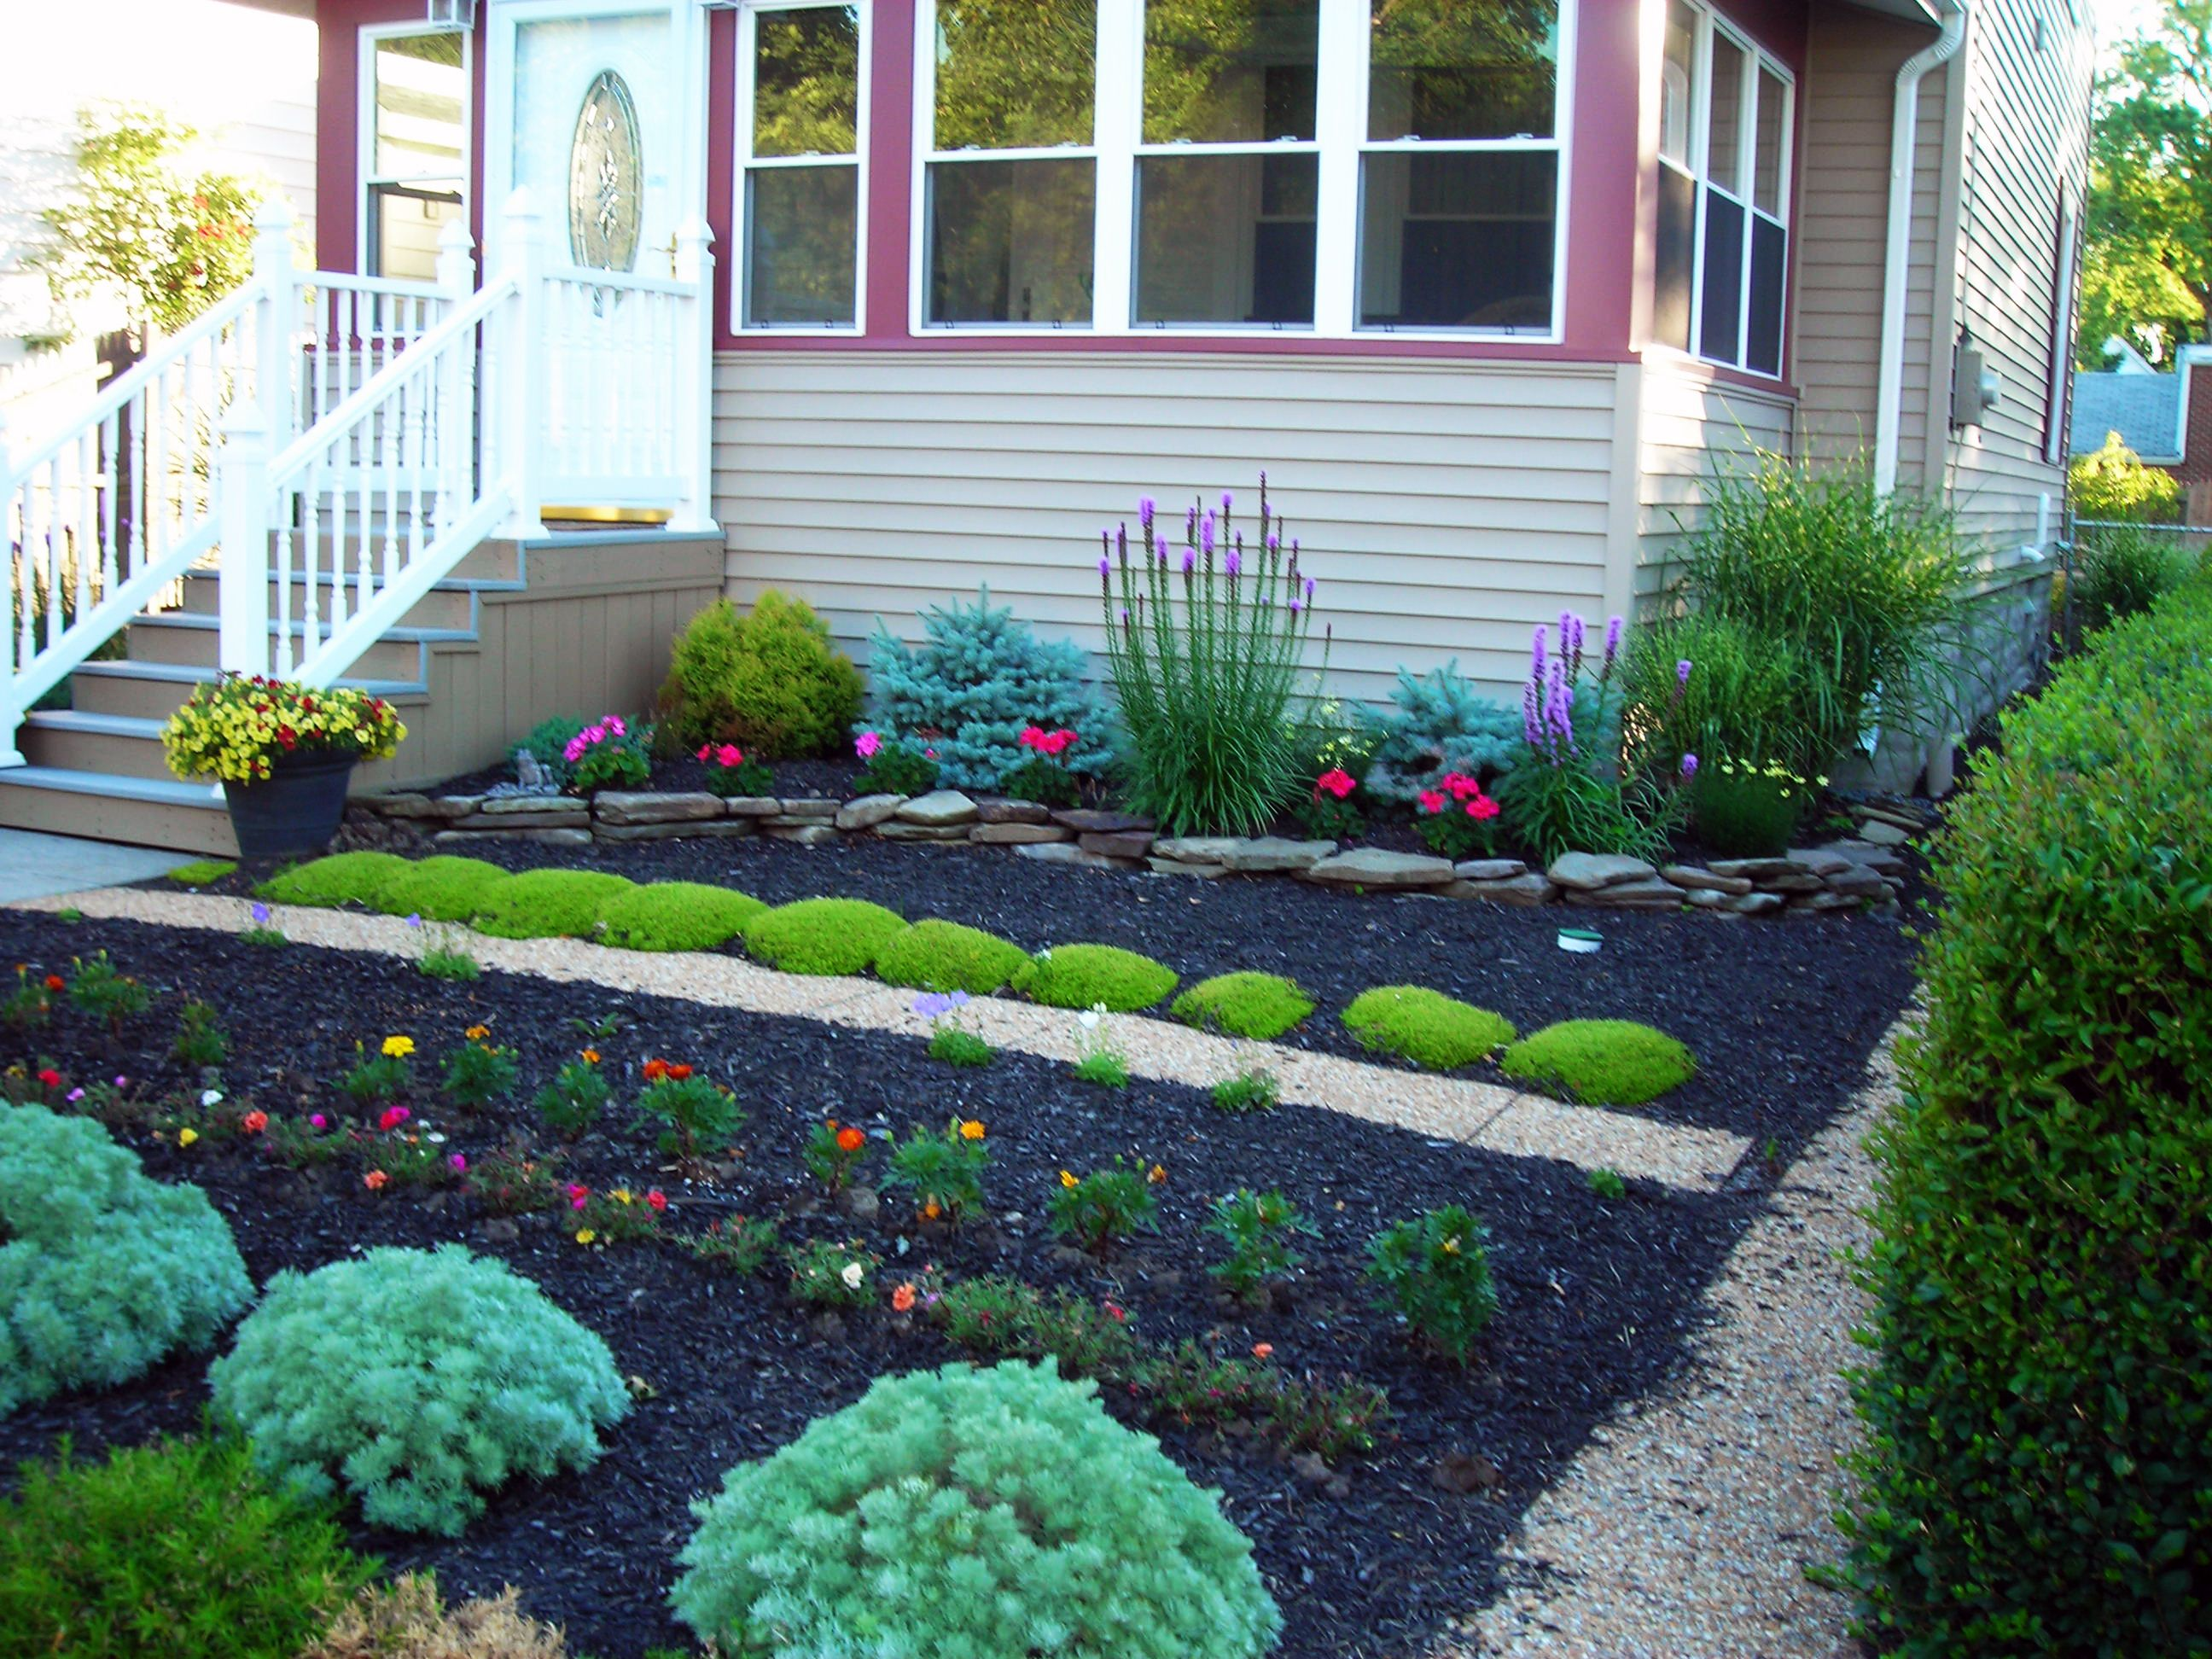 Front Yard Garden Ideas No Grass House Plans and More